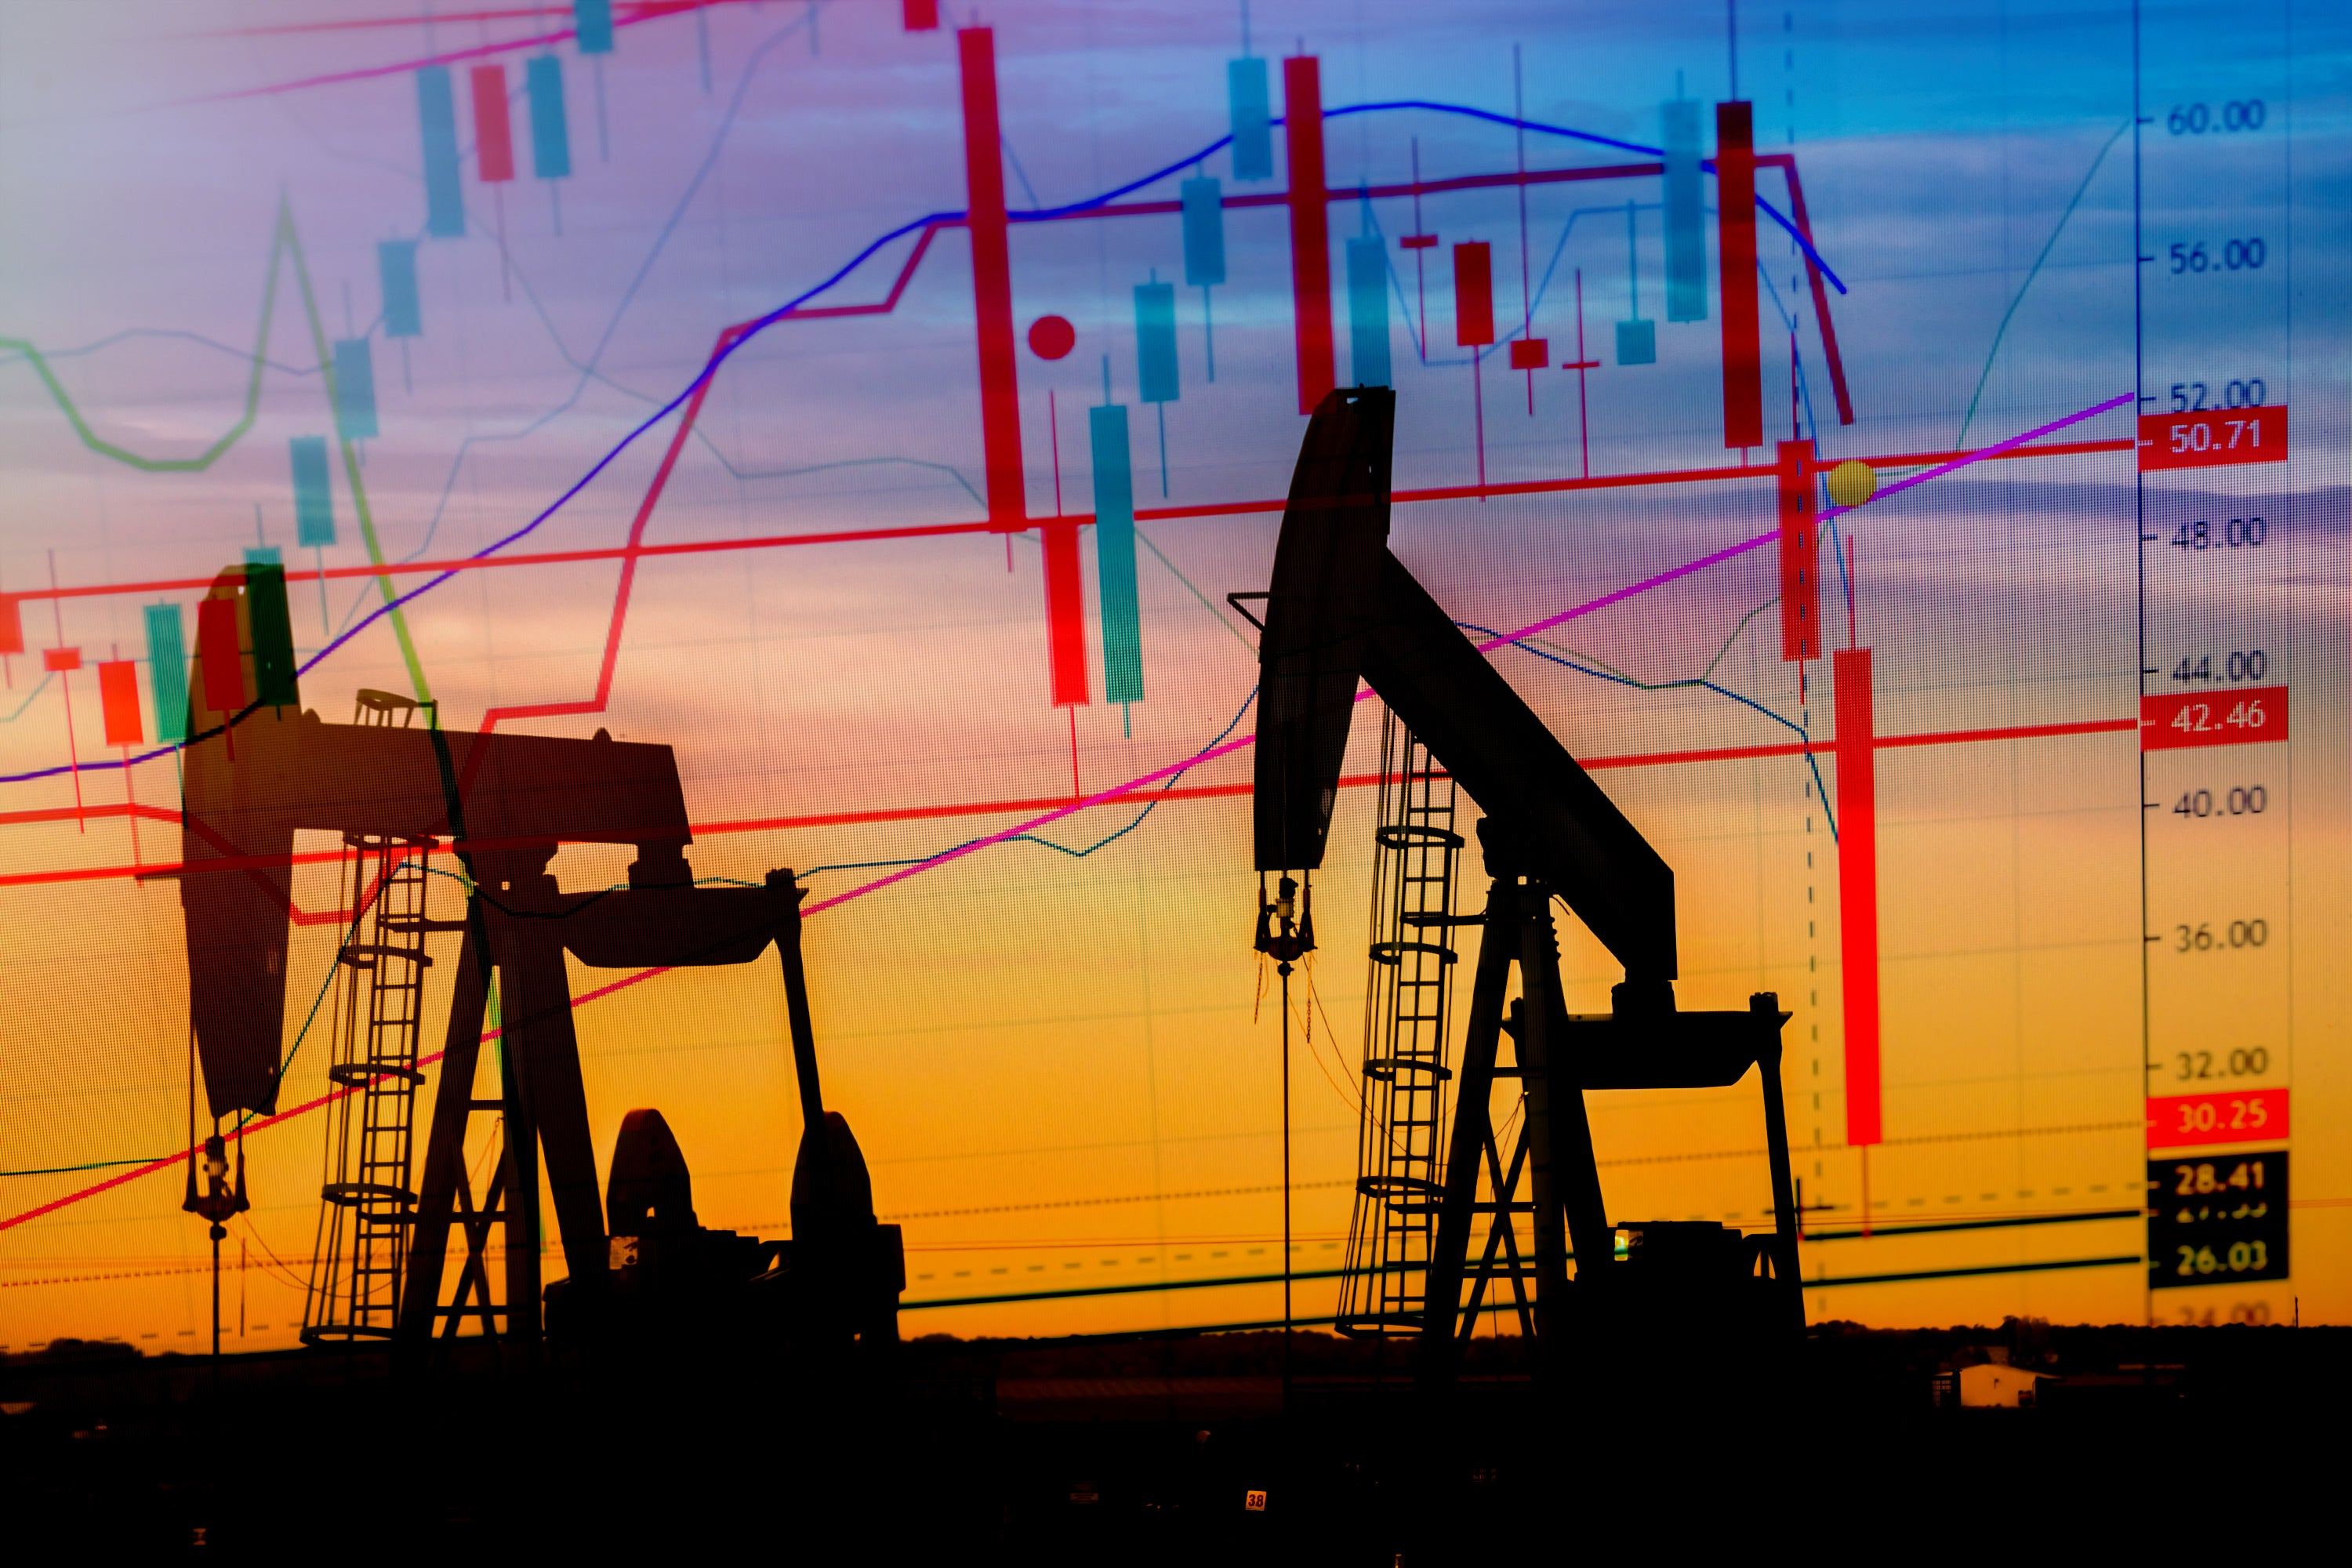 OPEC+ Meets to Discuss Stabilizing Oil Market